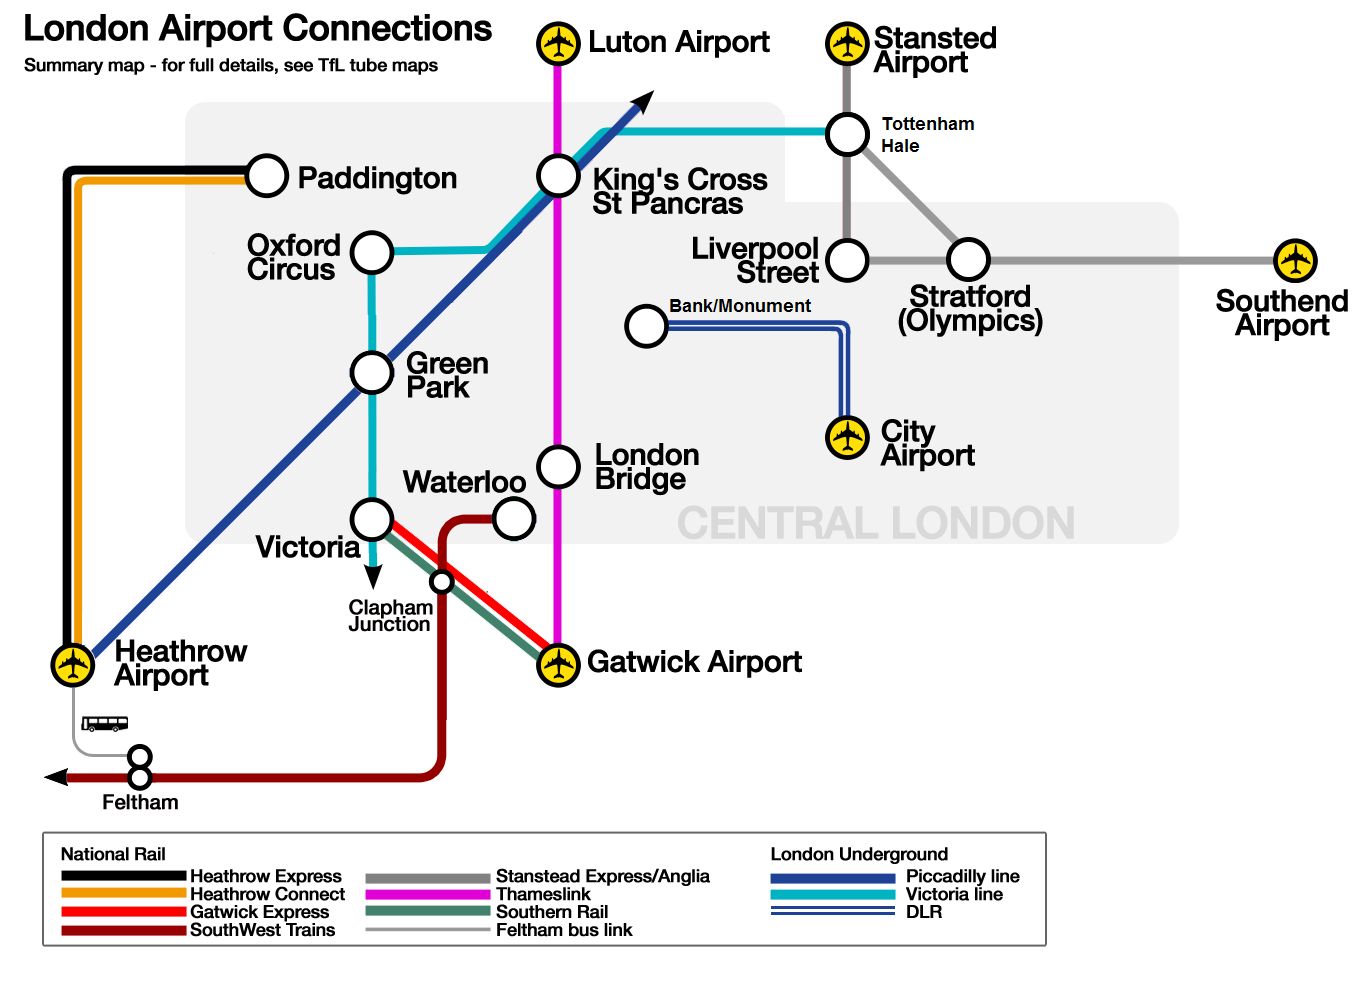 """London airport links map"" by Cnbrb - Own work. Licensed under CC BY-SA 3.0 via Wikimedia Commons."